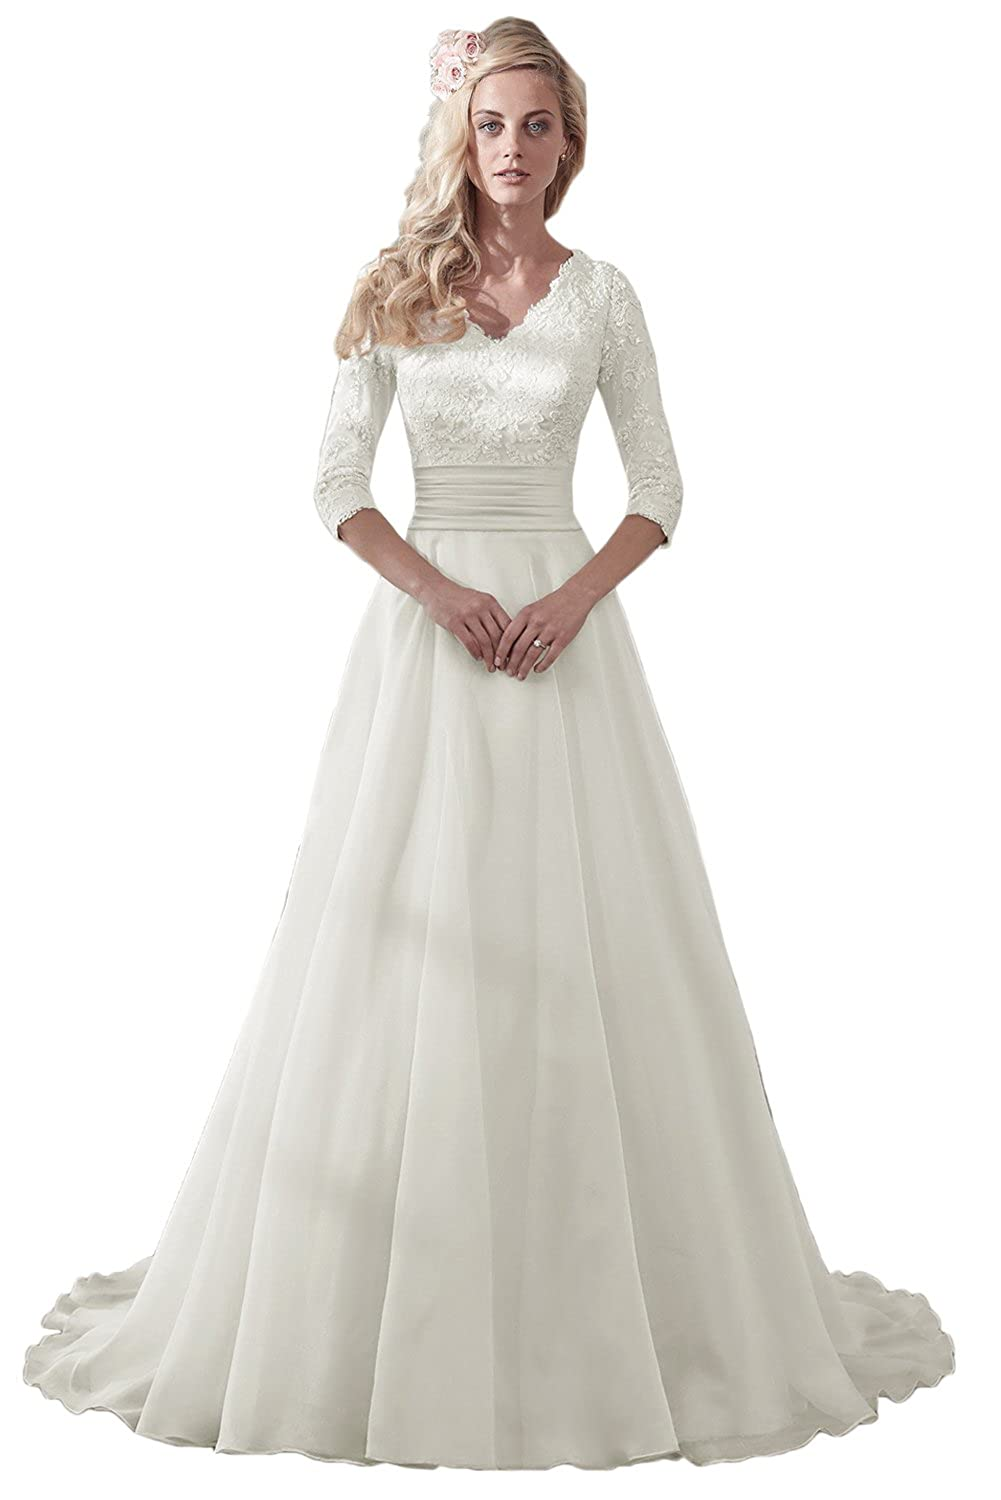 Vintage Style Wedding Dresses, Vintage Inspired Wedding Gowns MILANO BRIDE Modest Wedding Dress For Bride V-Neck Sleeves Organza Floral Lace $146.69 AT vintagedancer.com